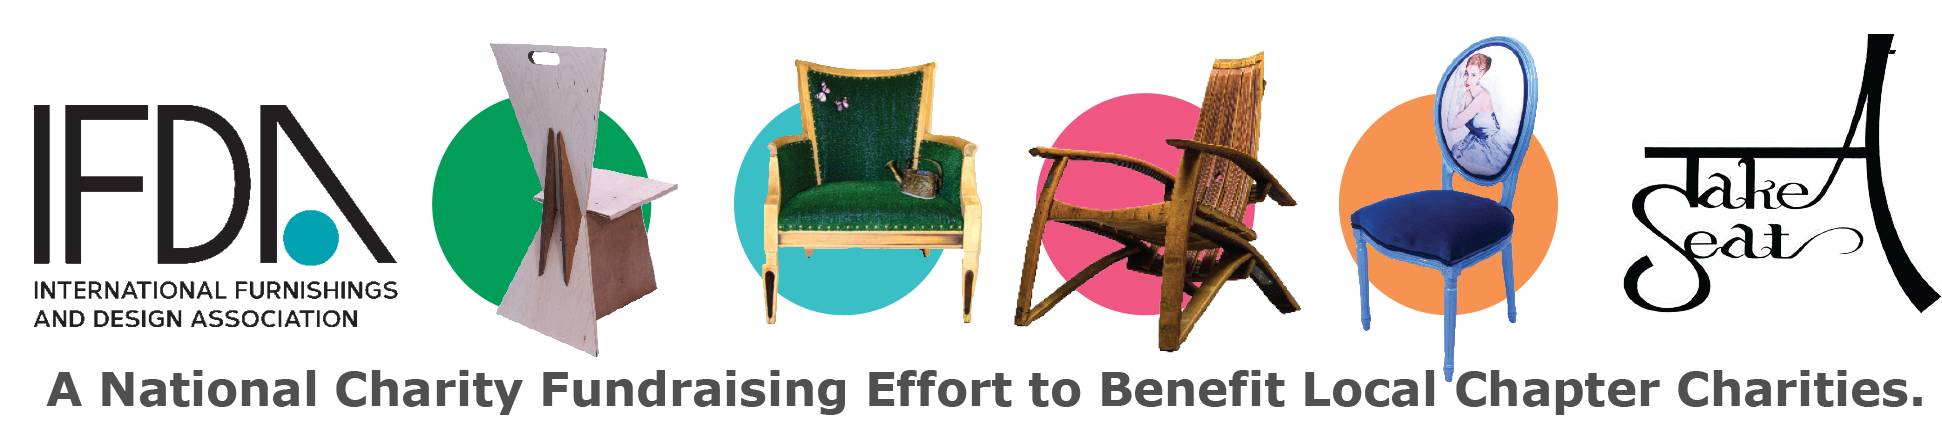 Ifda Take A Seat Design Exhibition Benefiting Local Heroes Charities